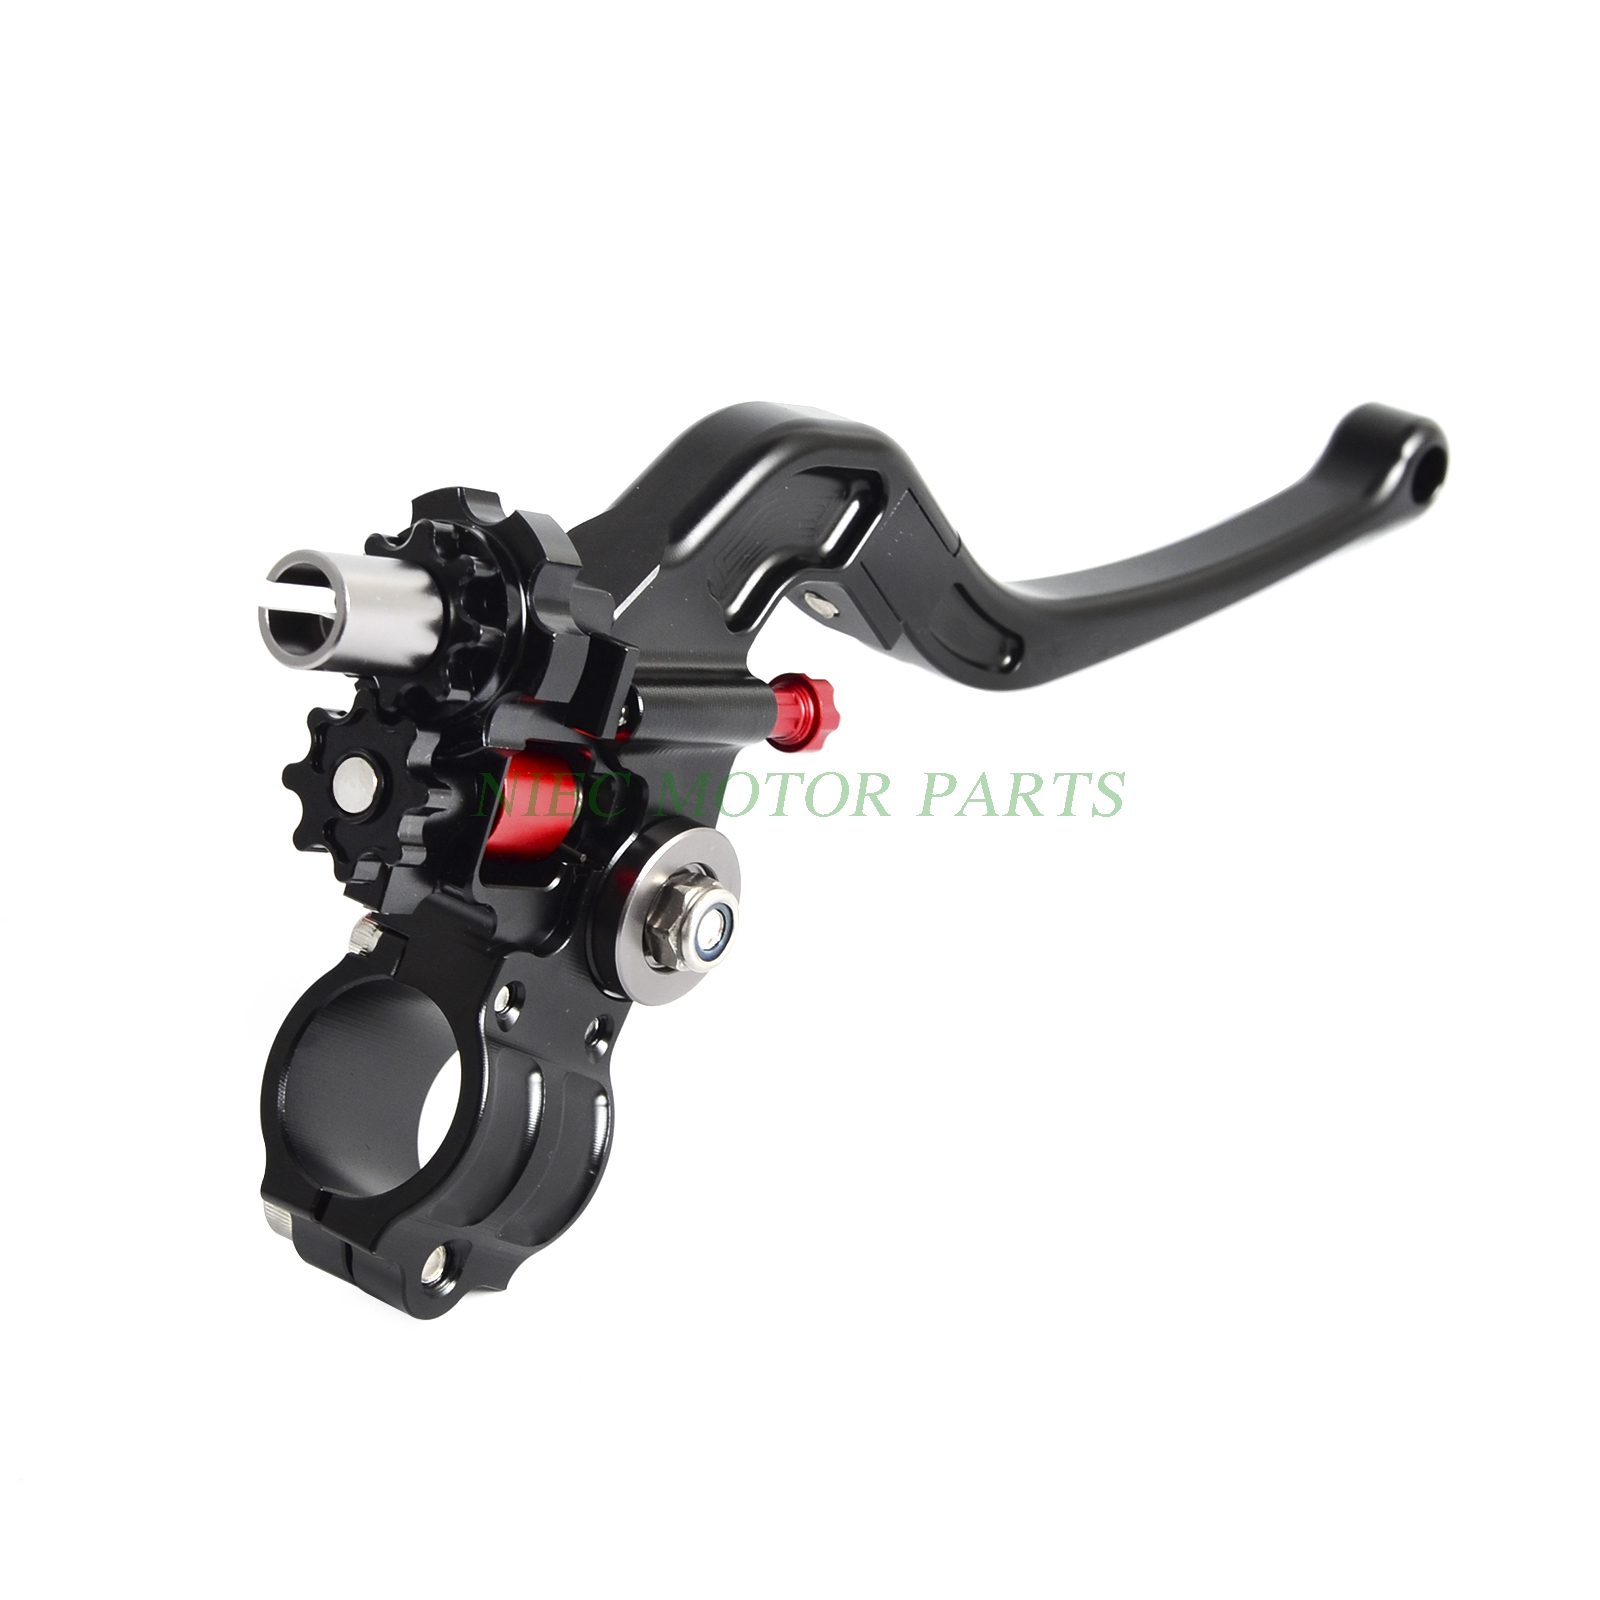 Performance GP Clutch Lever Perch Clutch Lever Assembly For Honda CBR Kawasaki Suzuki KTM Triumph Yamaha YZF R1 R6<br>